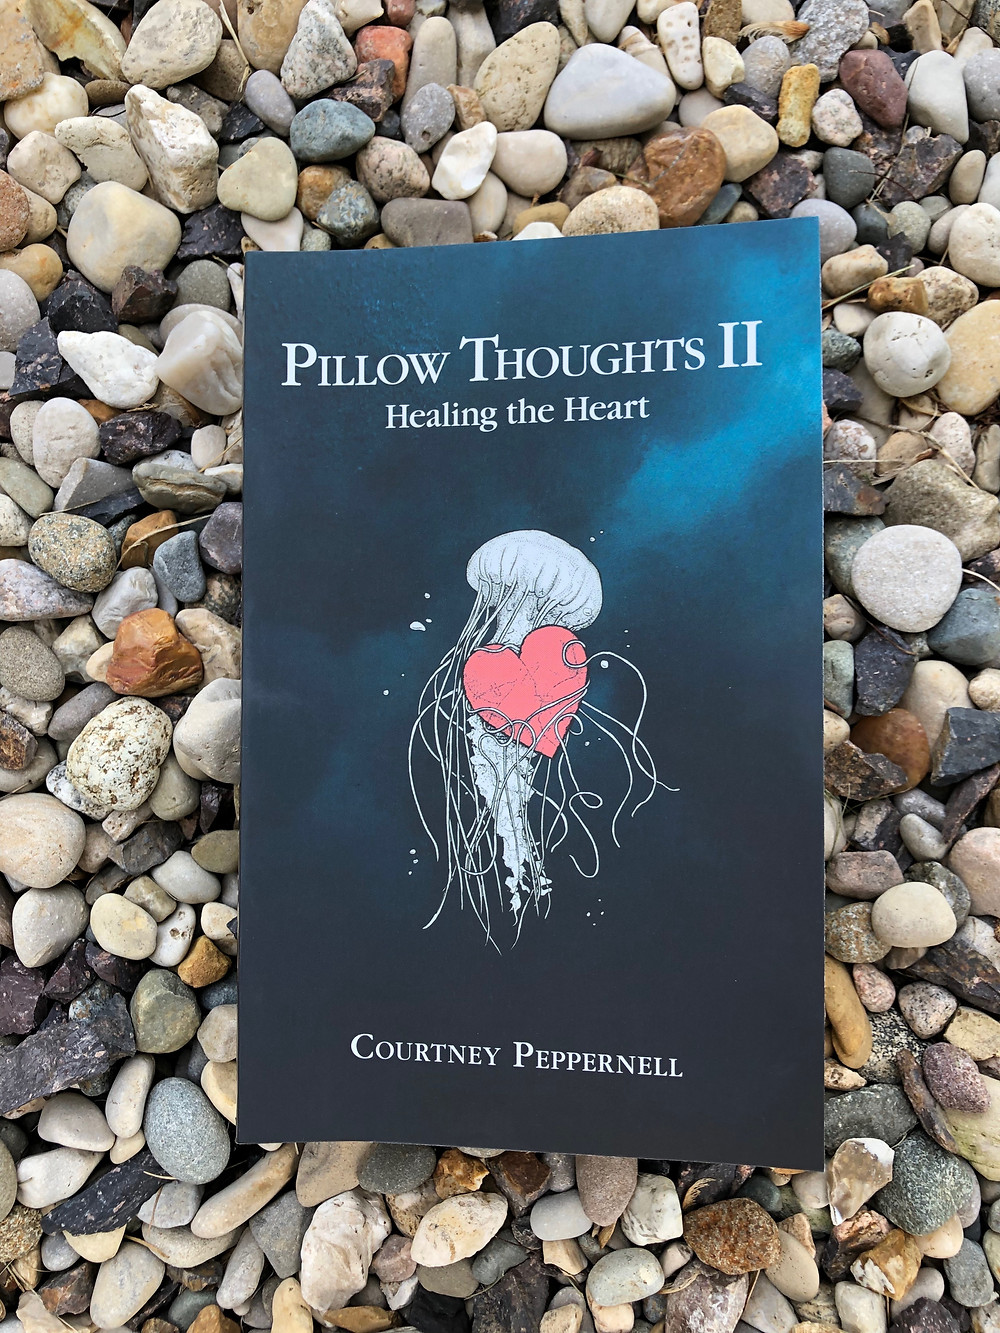 pillow thoughts ii book review